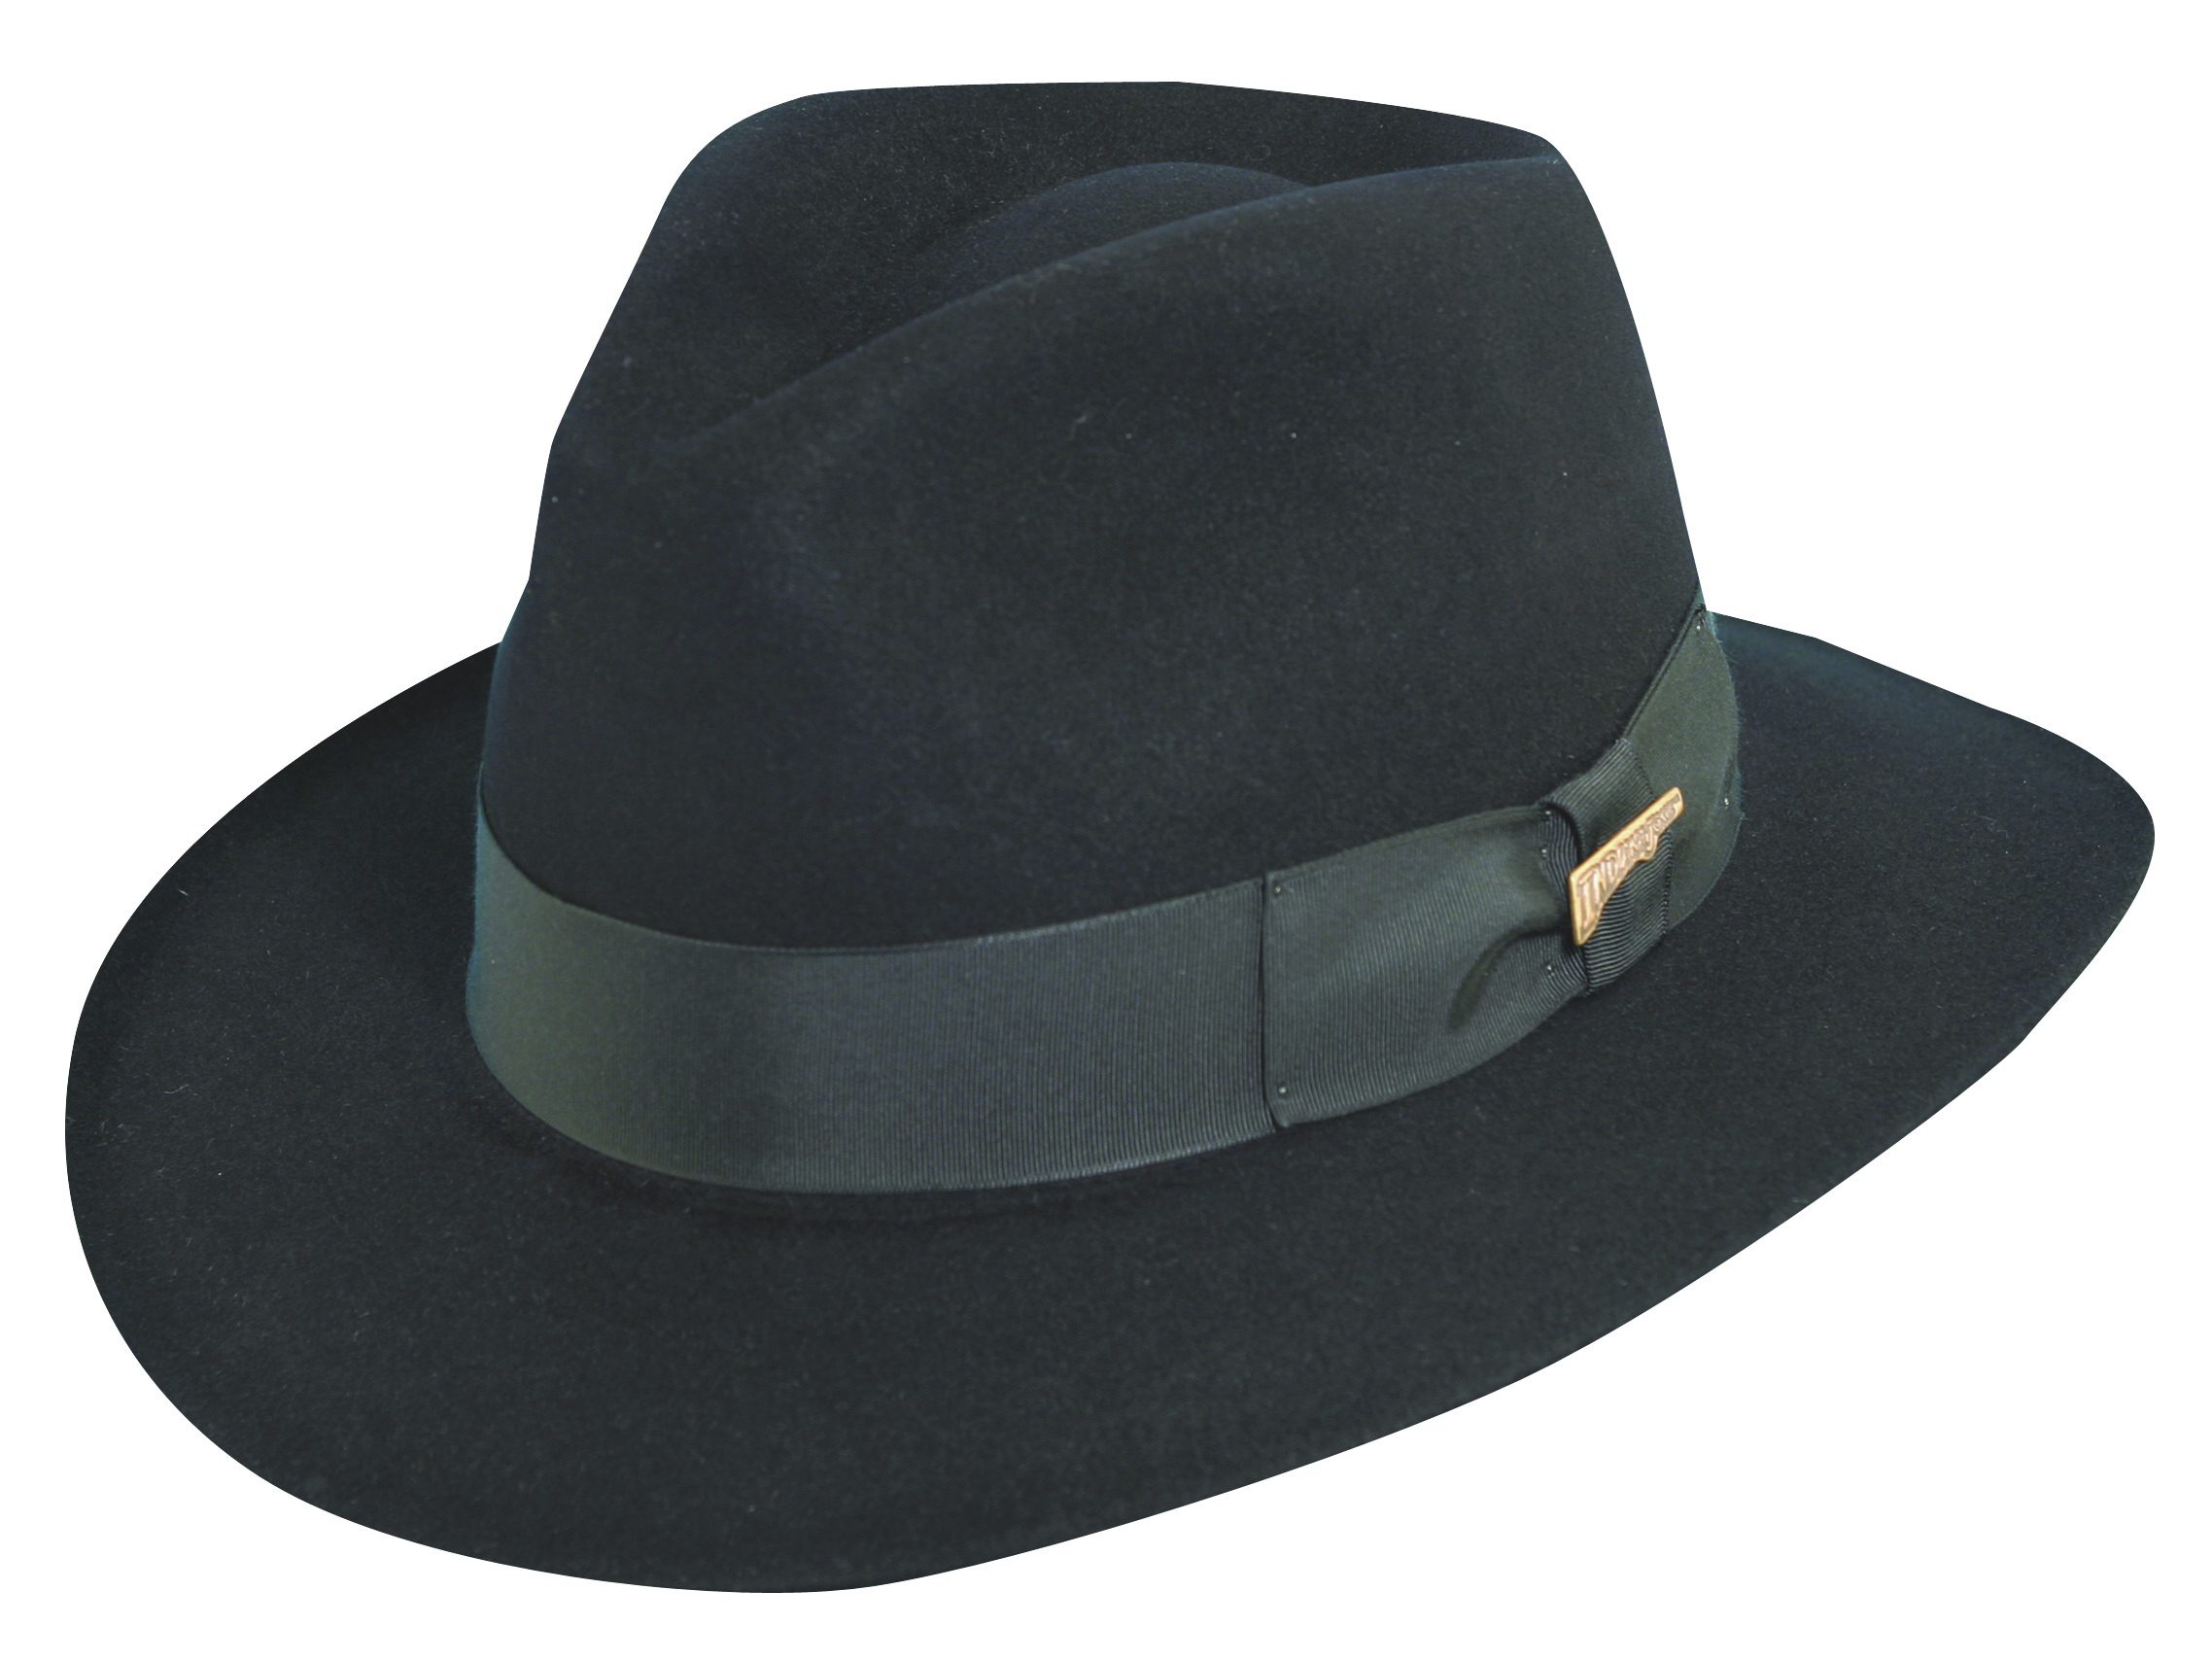 Black Indiana Jones Fur Felt Fedora Hat e8b4bd10afd